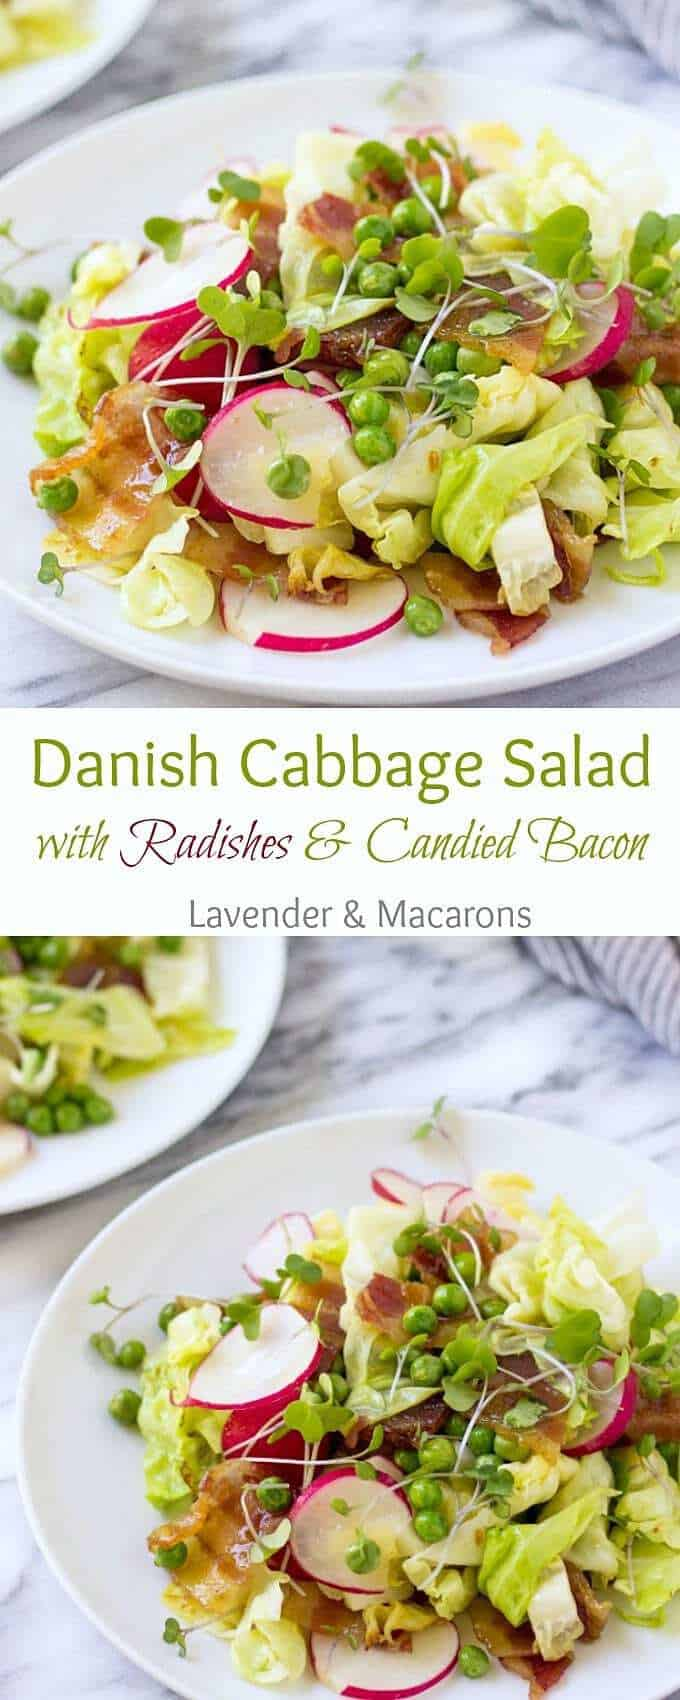 Learn how to make a delicious Danish Cabbage Salad with Radishes and Candied Bacon. Cooking Scandinavian Recipes has never been easier.